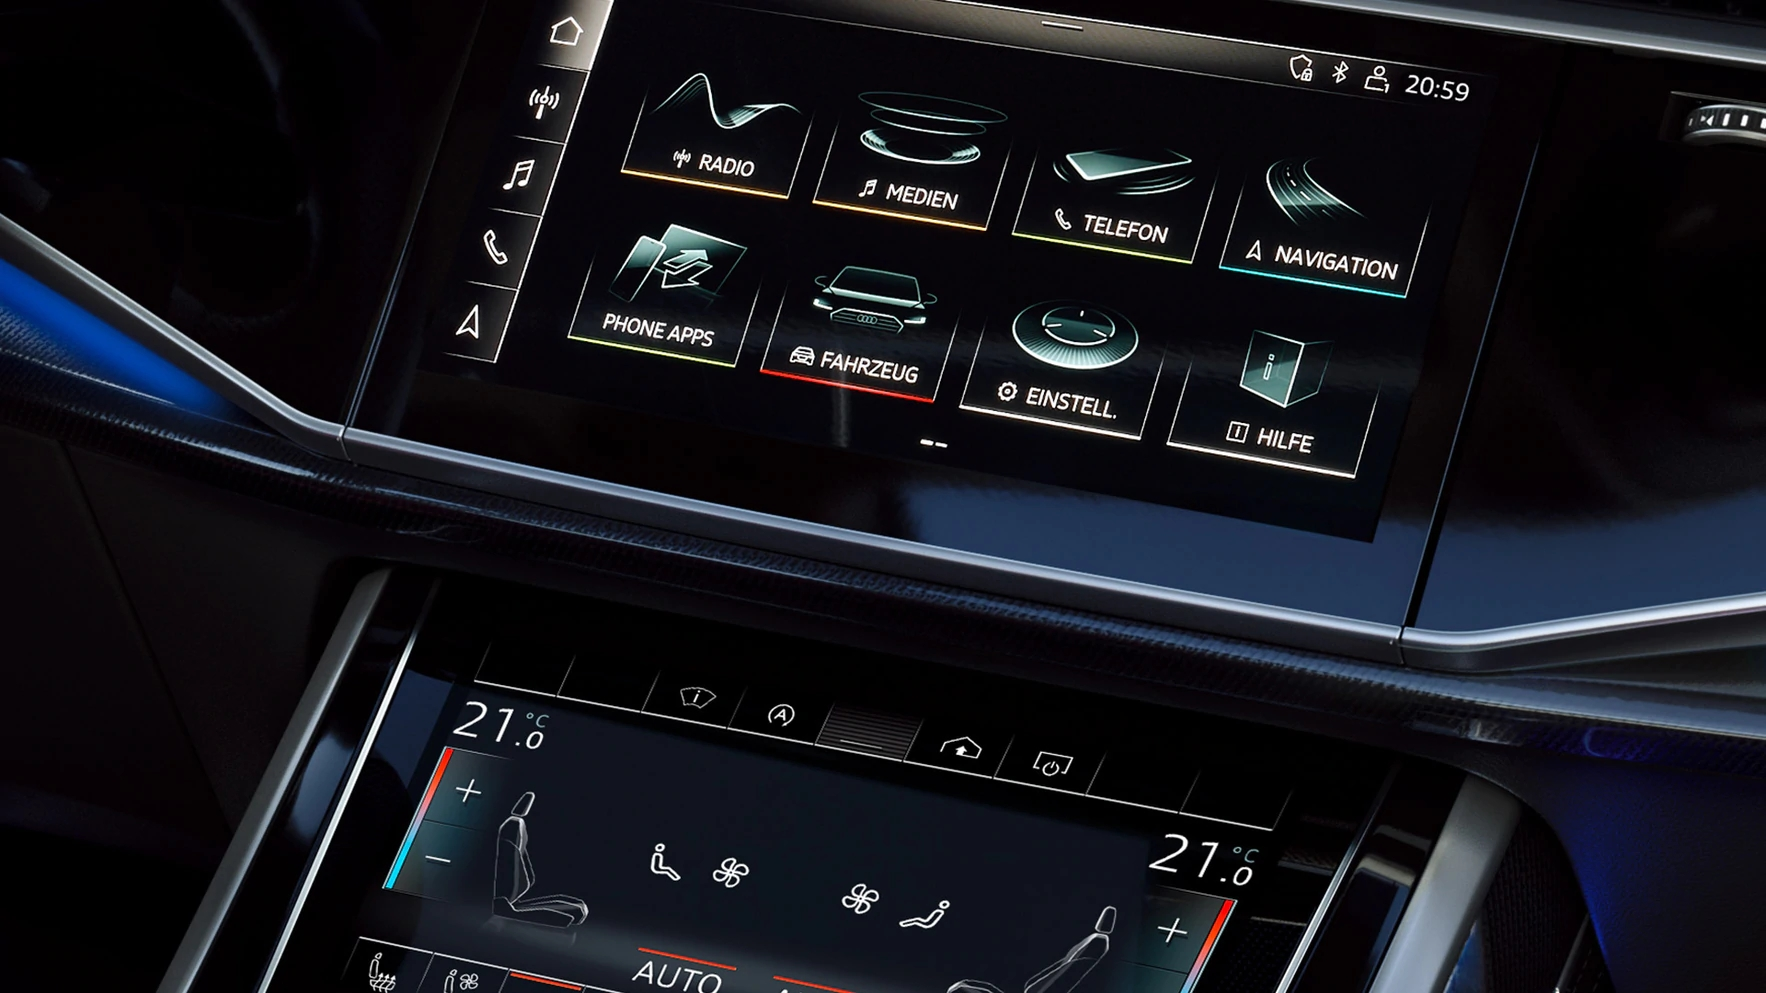 Audi SQ7 TDI MMI Navigation plus